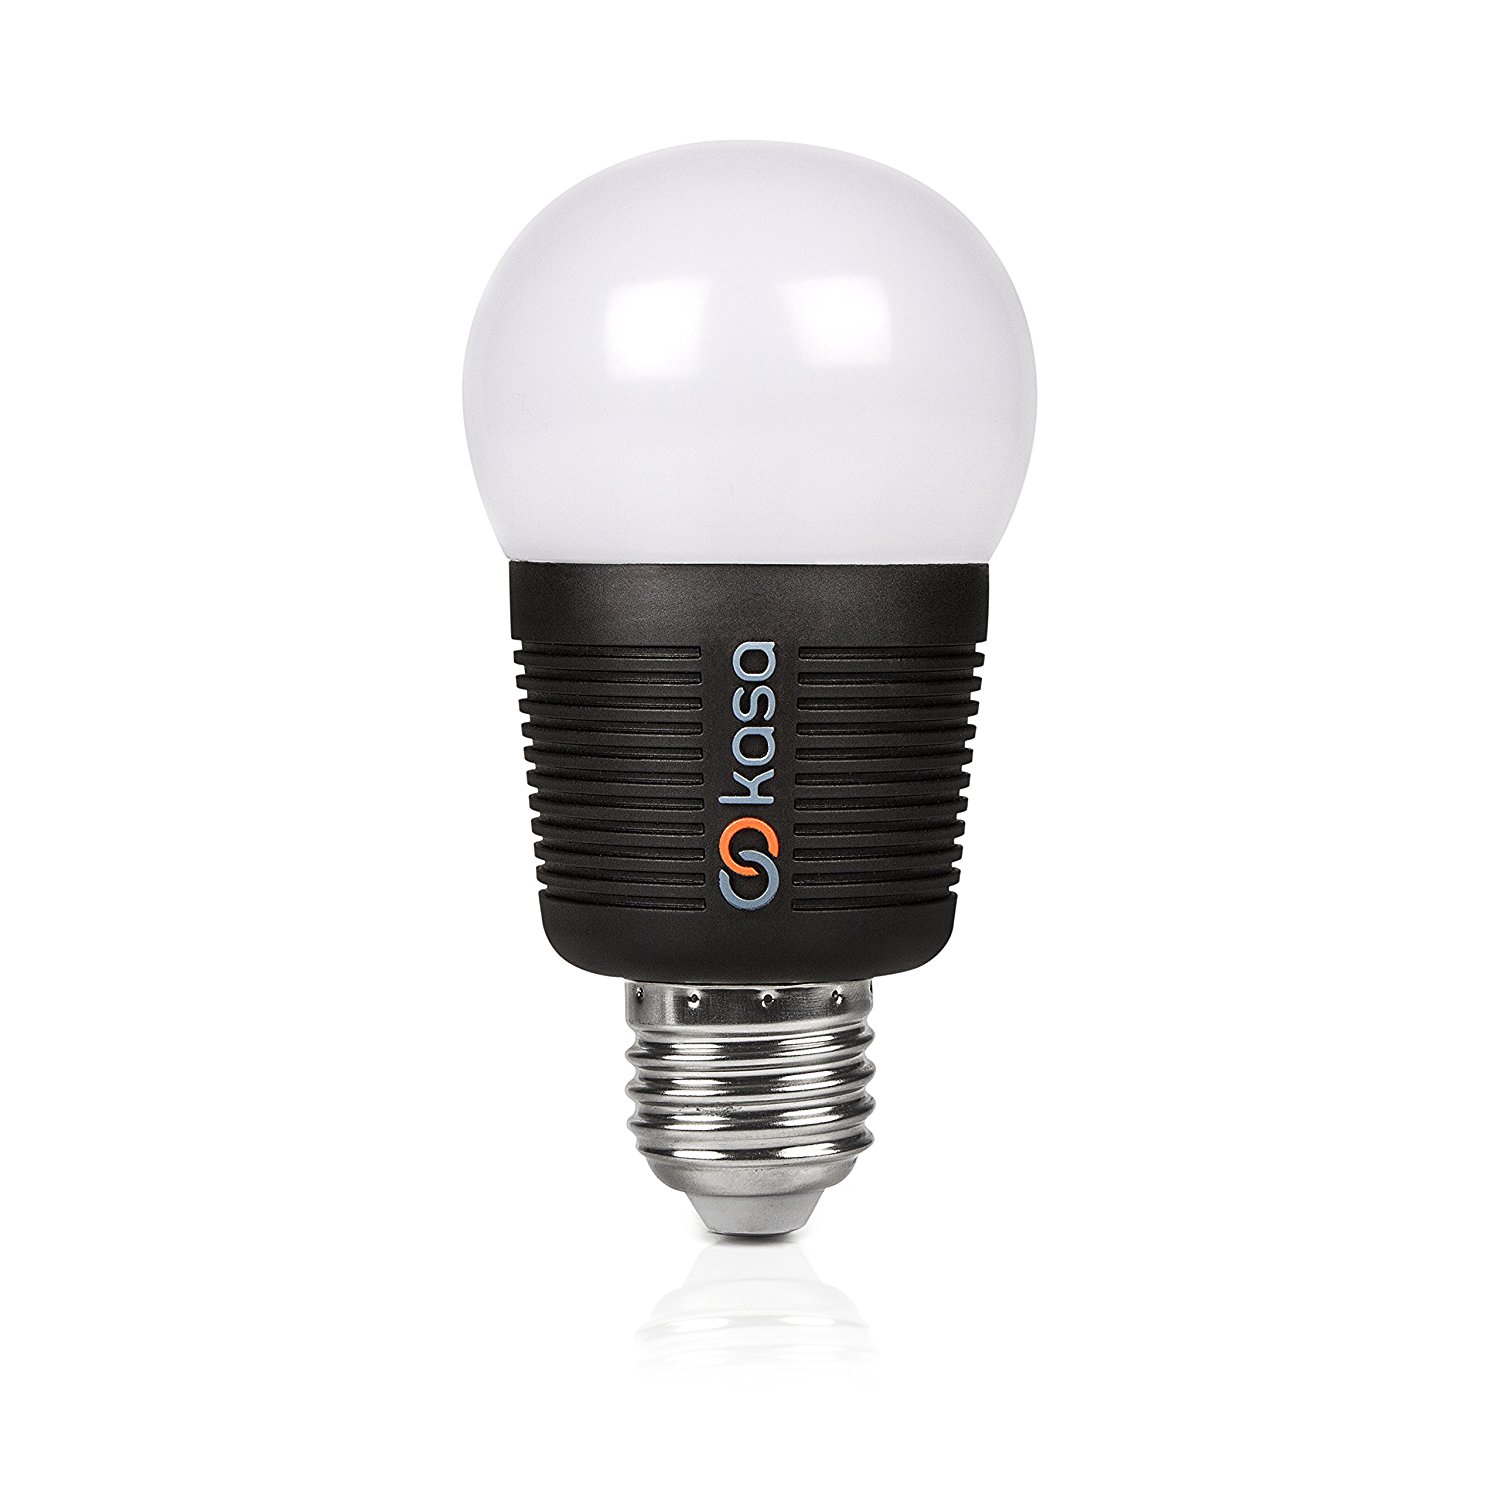 Image for Veho Kasa Bluetooth Smart Lighting LED Screw Cap E26 Bulb from Circuit City